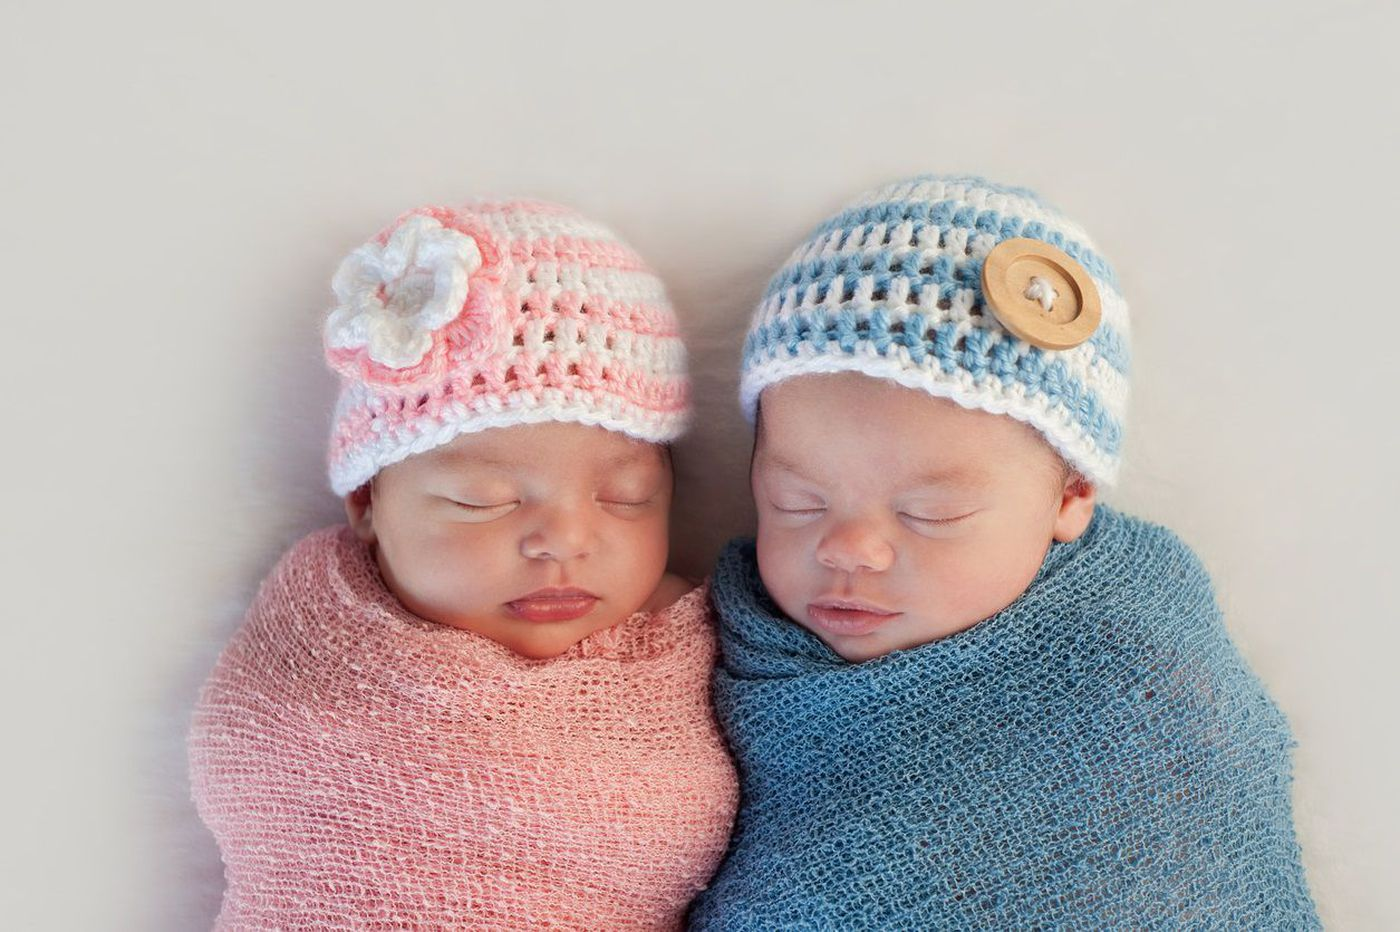 For twins, gender inequities may start in the womb, a new study finds